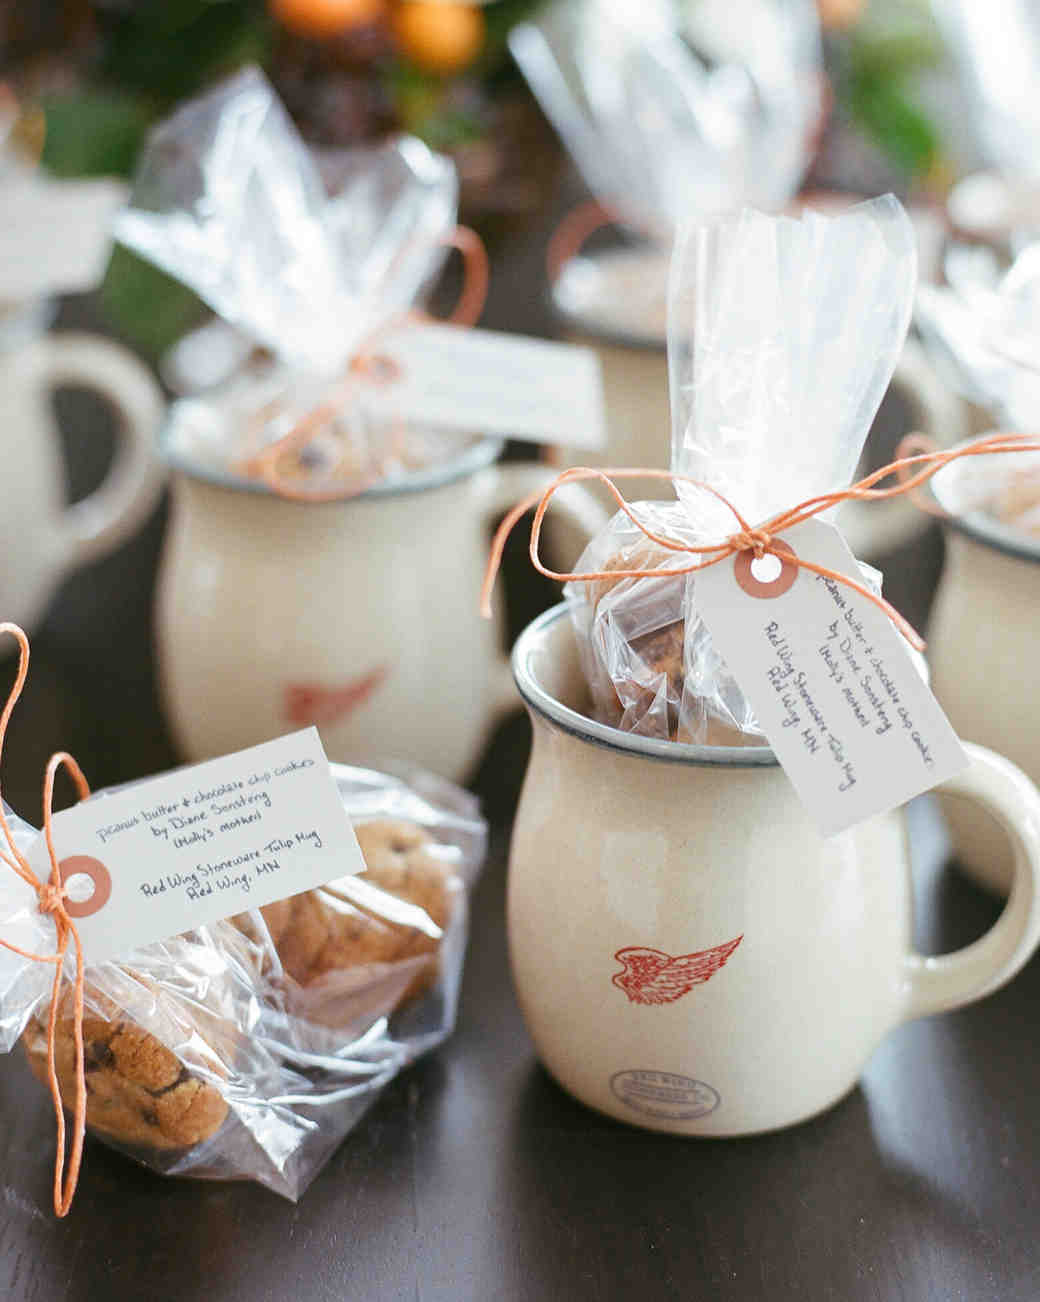 32 Unique Ideas for Winter Wedding Favors | Martha Stewart Weddings